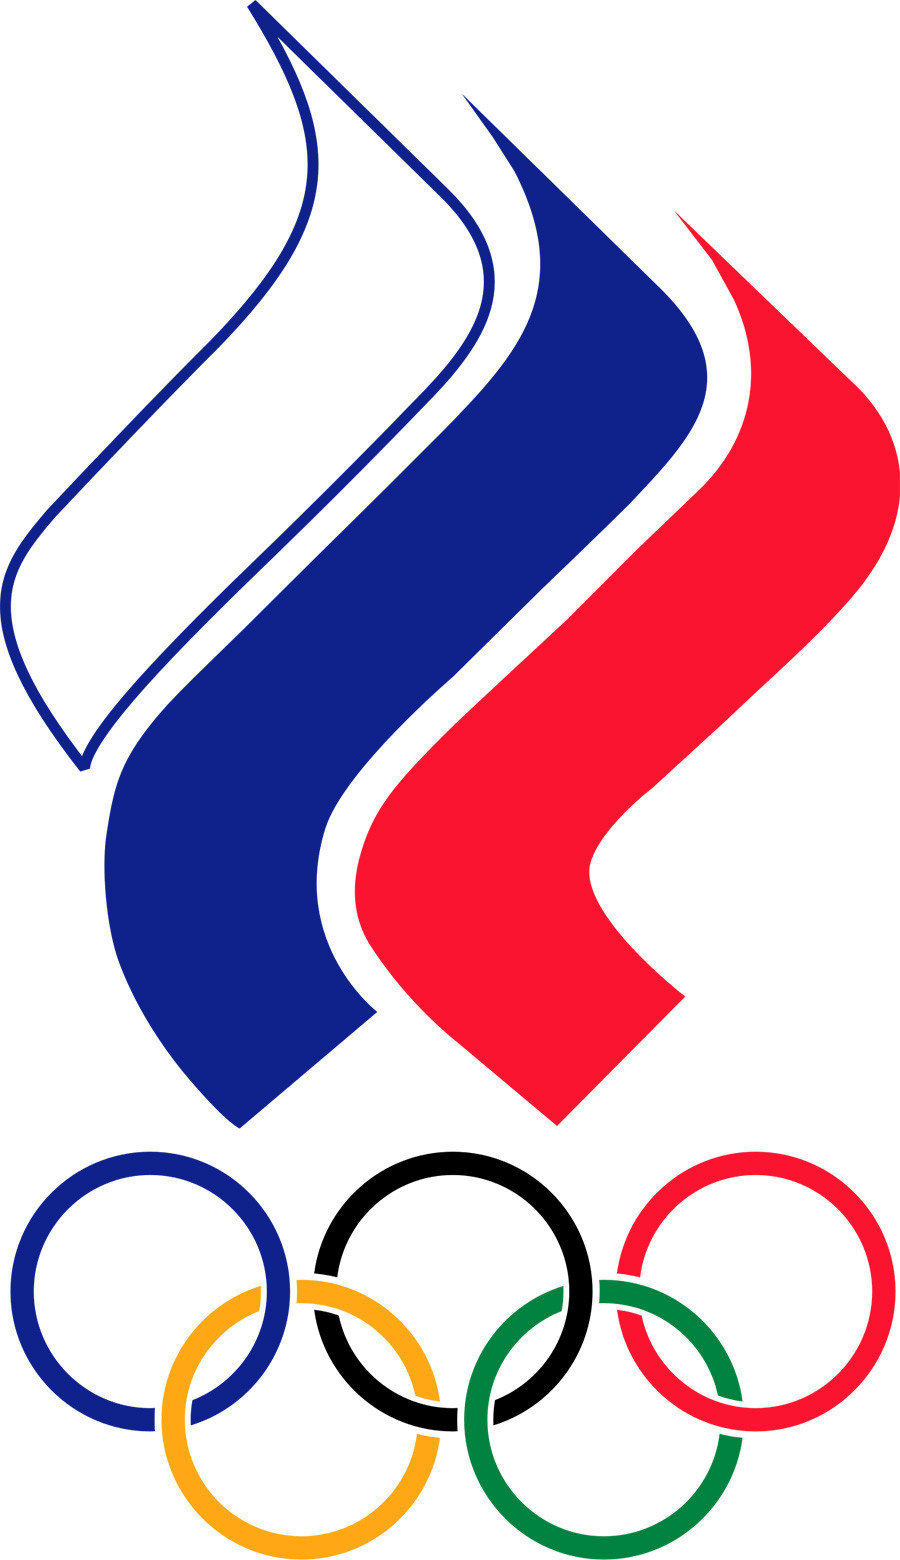 The emblem of the Russian Olympic Committee